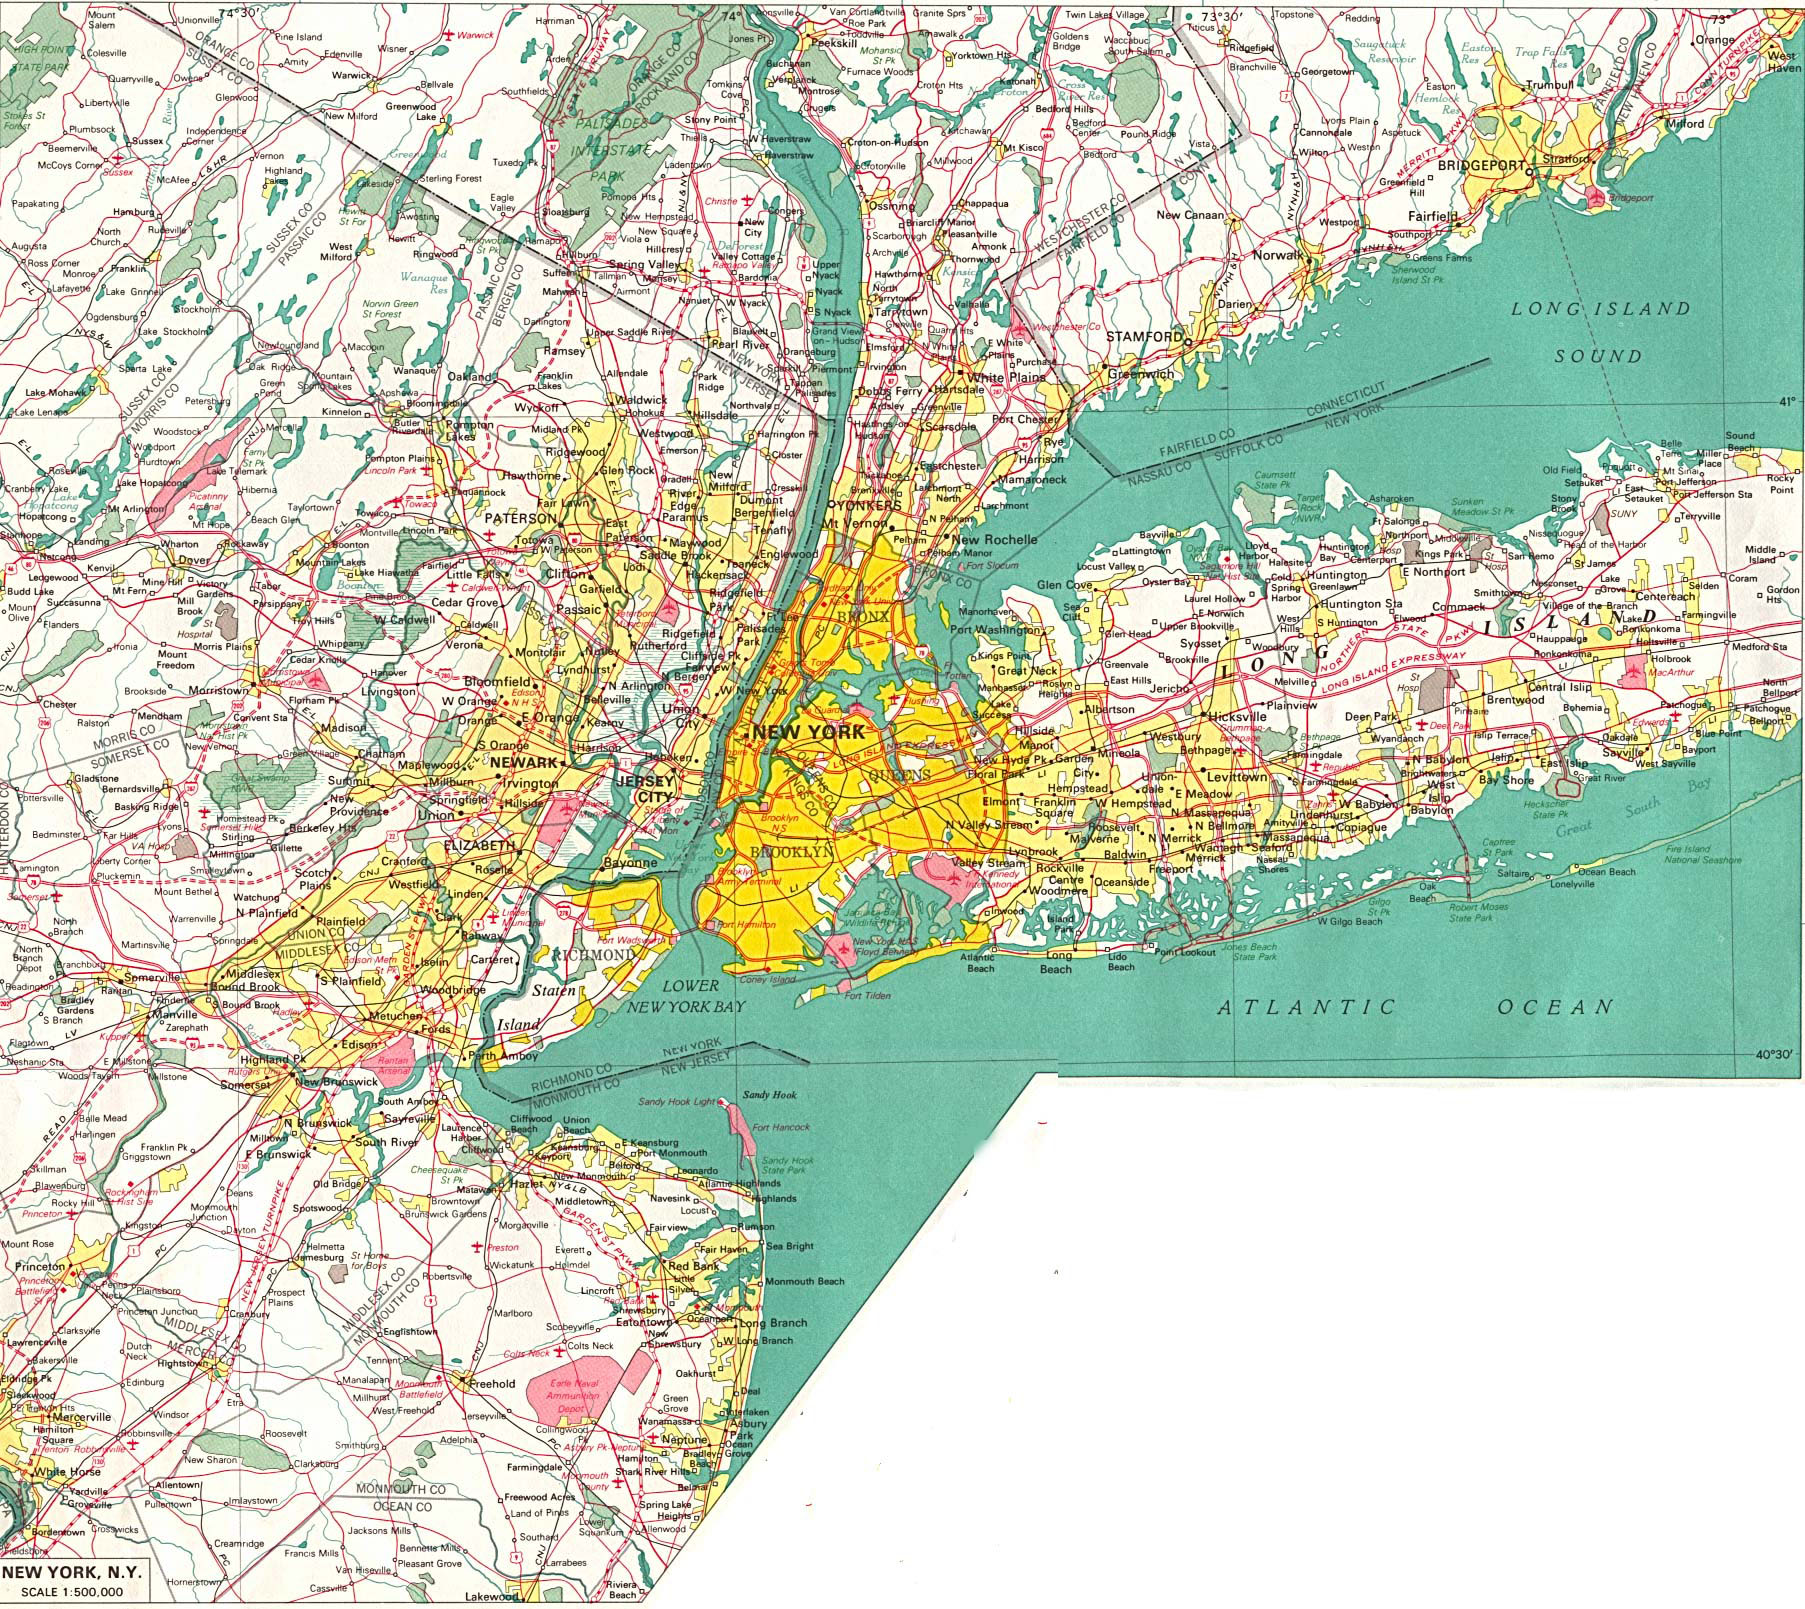 Large Detailed Road Map Of New York City And Its Environs NYmap - New york state map with cities